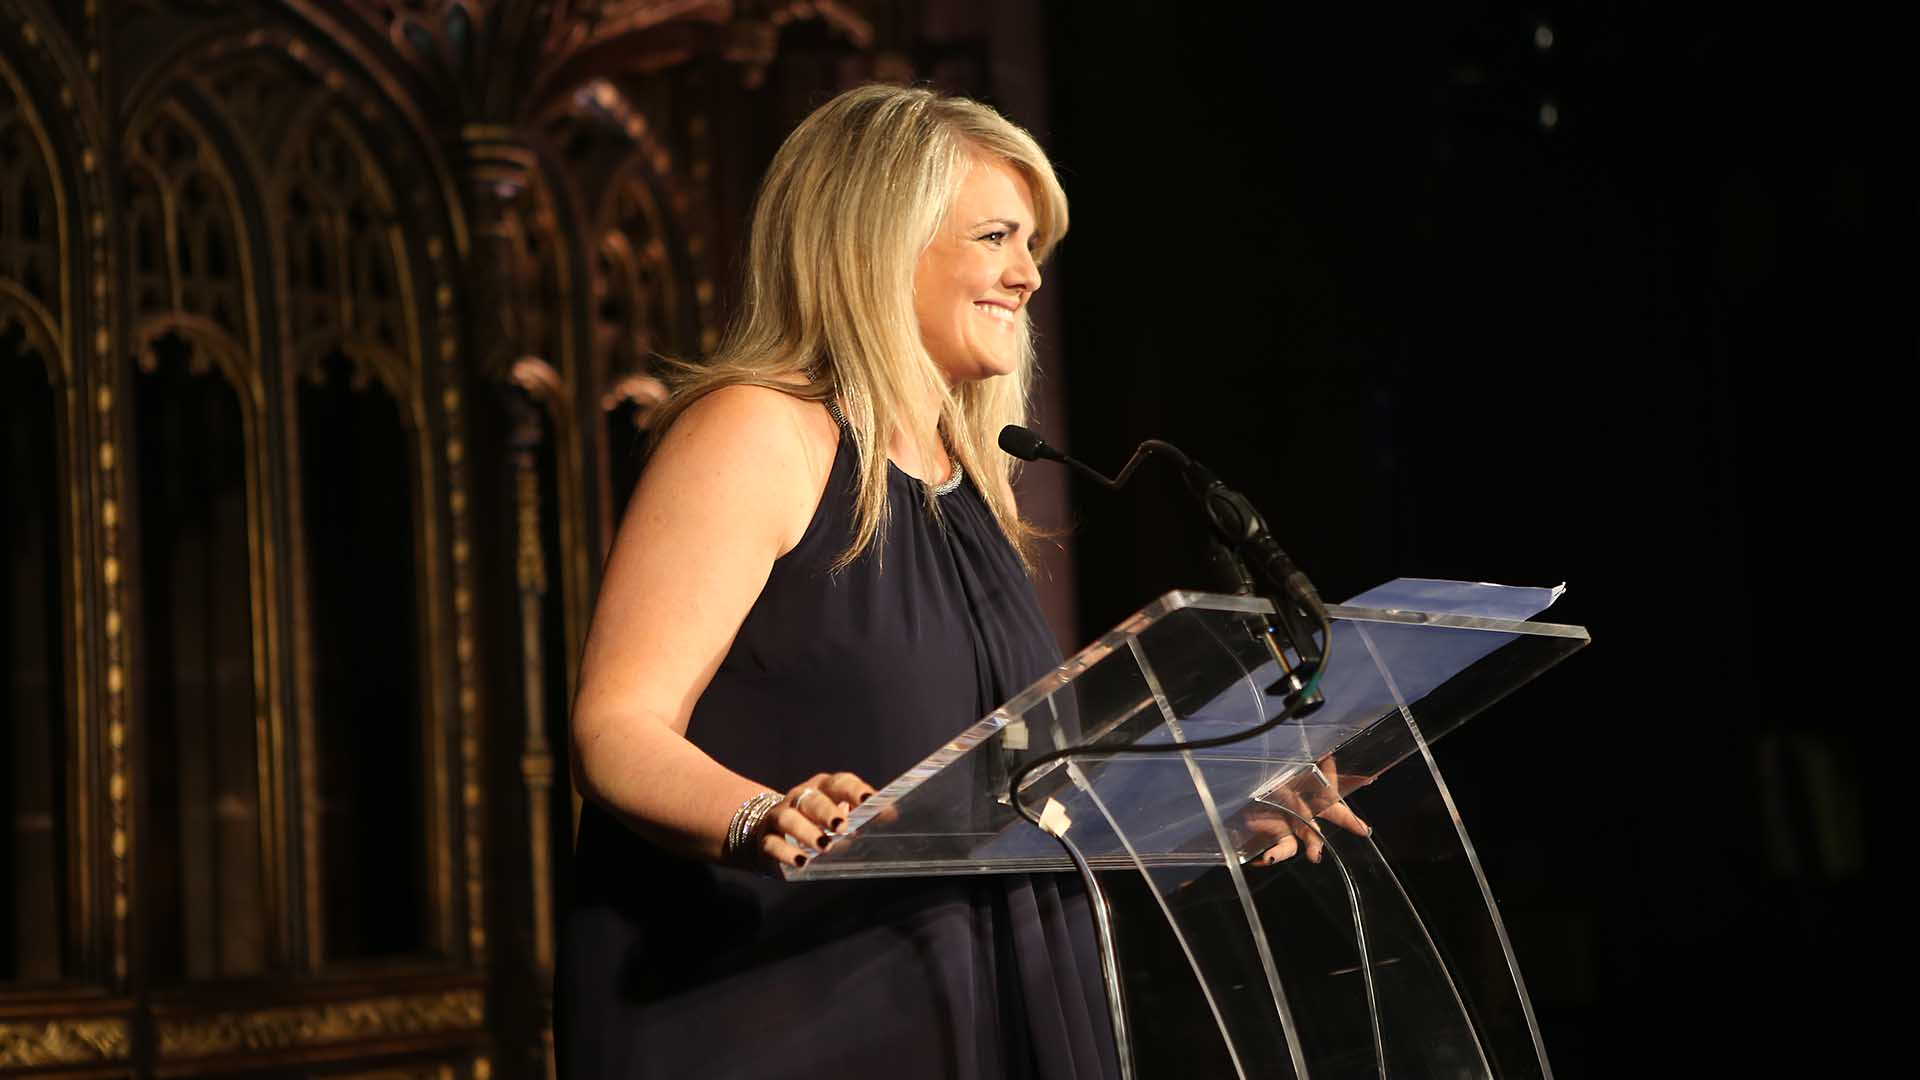 Corporate Event Entertainment by TLC Limited 2018 Sally Lindsay